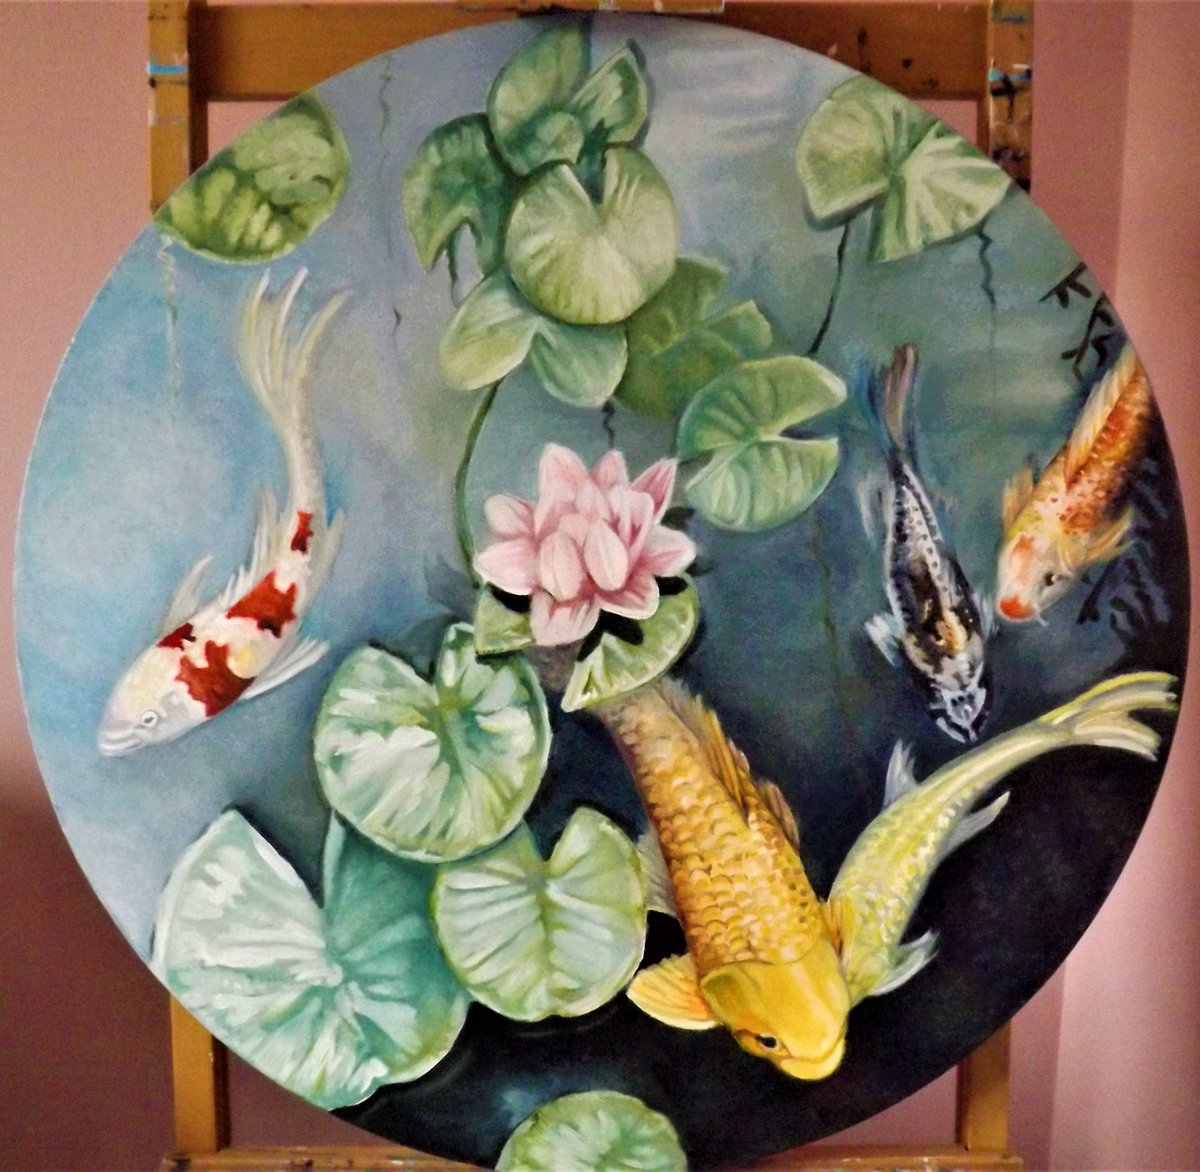 RT @louisajs1: Just completed 'Koi Serenity' @artfinder #painting #Koi #fish #pond #water #waterpainting https://t.co/1SG9MZnU2V